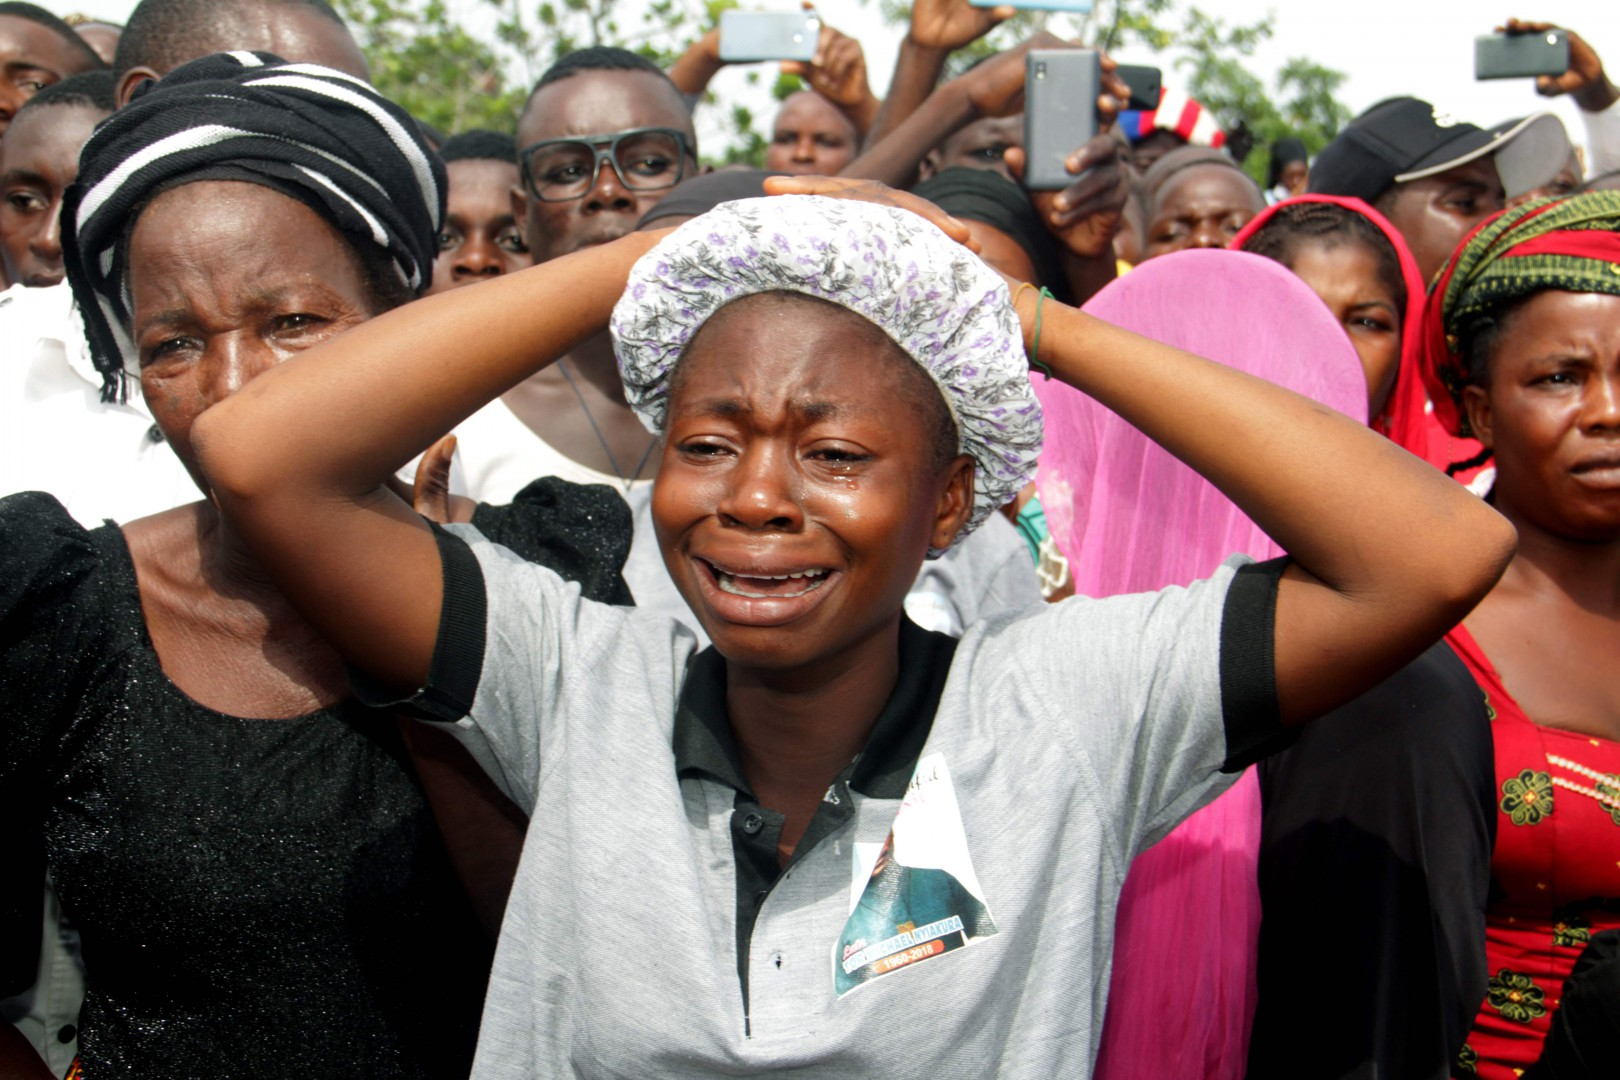 Relatives cry as they mourn during a funeral service for 17 worshippers and two priests, who were allegedly killed by Fulani herdsmen, at Ayati-Ikpayongo in Gwer East district of Benue State, north-central Nigeria on May 22, 2018.  Two Nigerian priests and 17 worshippers have been buried, nearly a month after an attack on their church, as Catholics took to the streets calling for an end to a spiral of violence. White coffins containing the bodies of the clergymen and the members of their congregation were laid to rest in central Benue state, which has been hit by a wave of deadly unrest. / AFP PHOTO / EMMY IBU